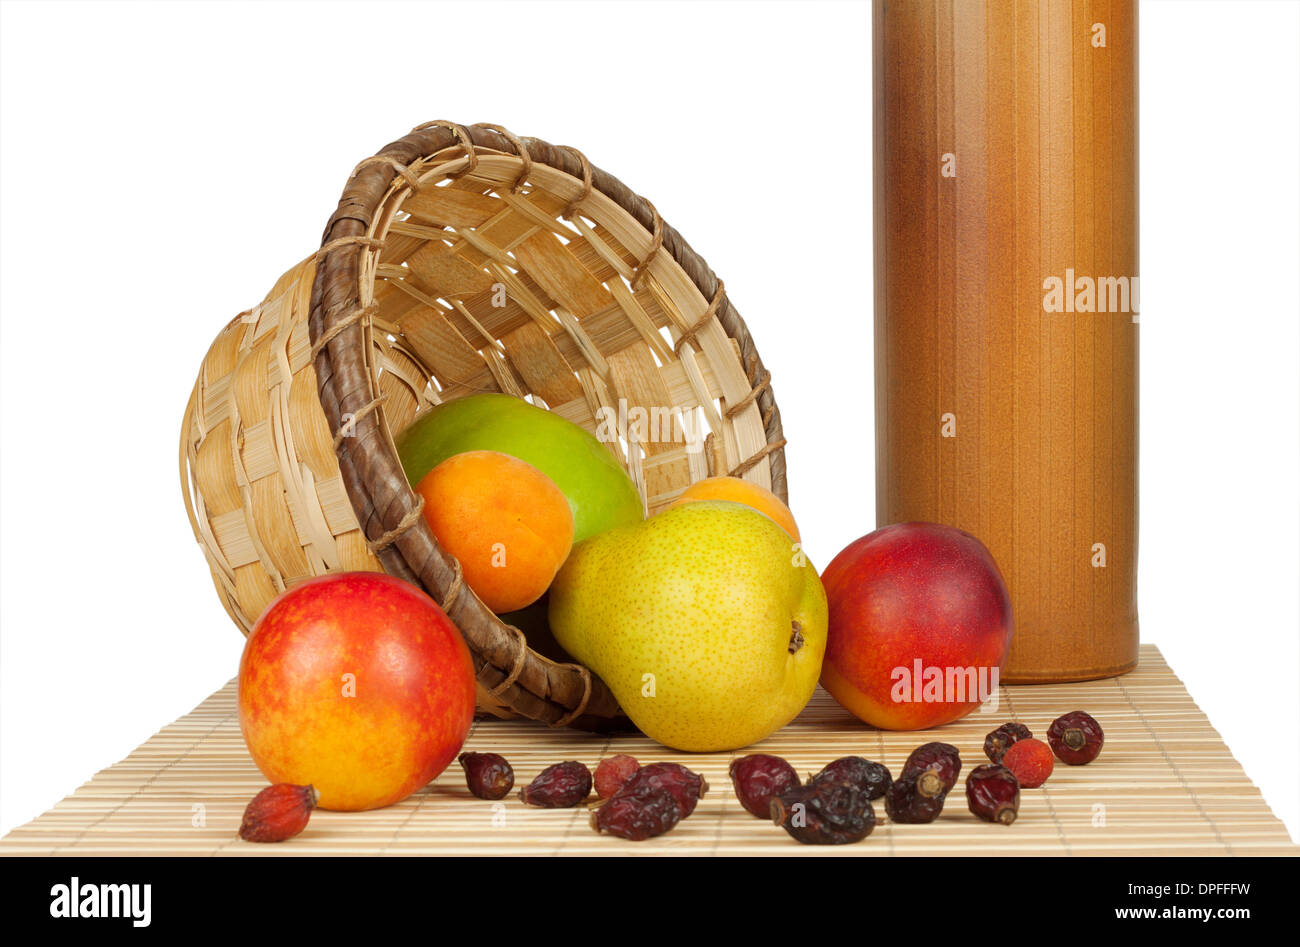 Fruit spill out of the basket on a bed of straw isolated on white background - Stock Image